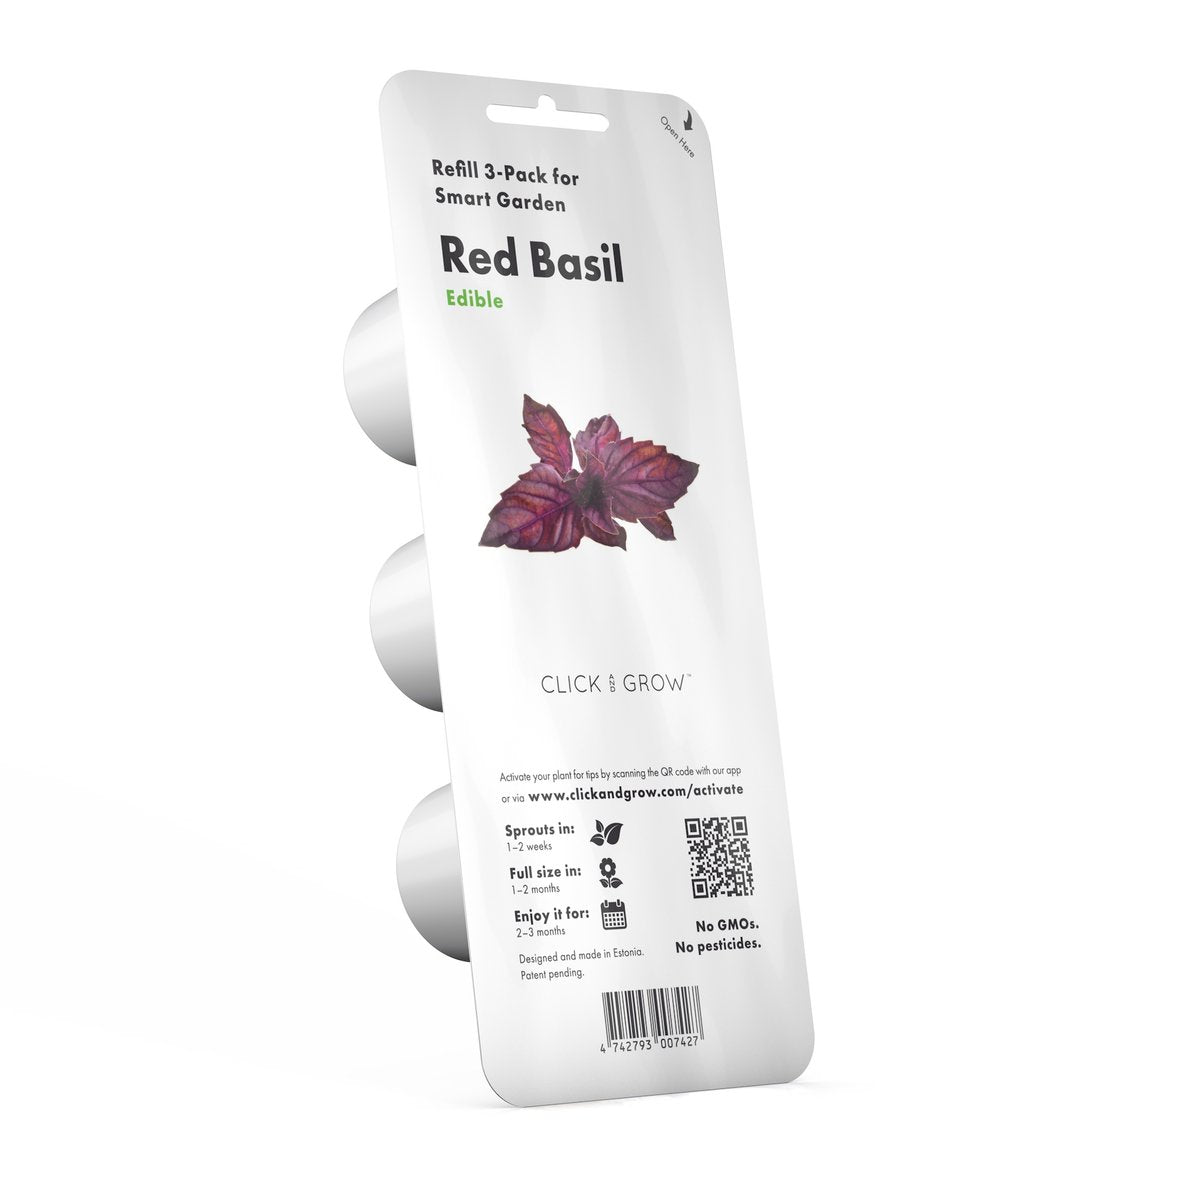 Click and Grow Refill 3-Pack - Red Basil